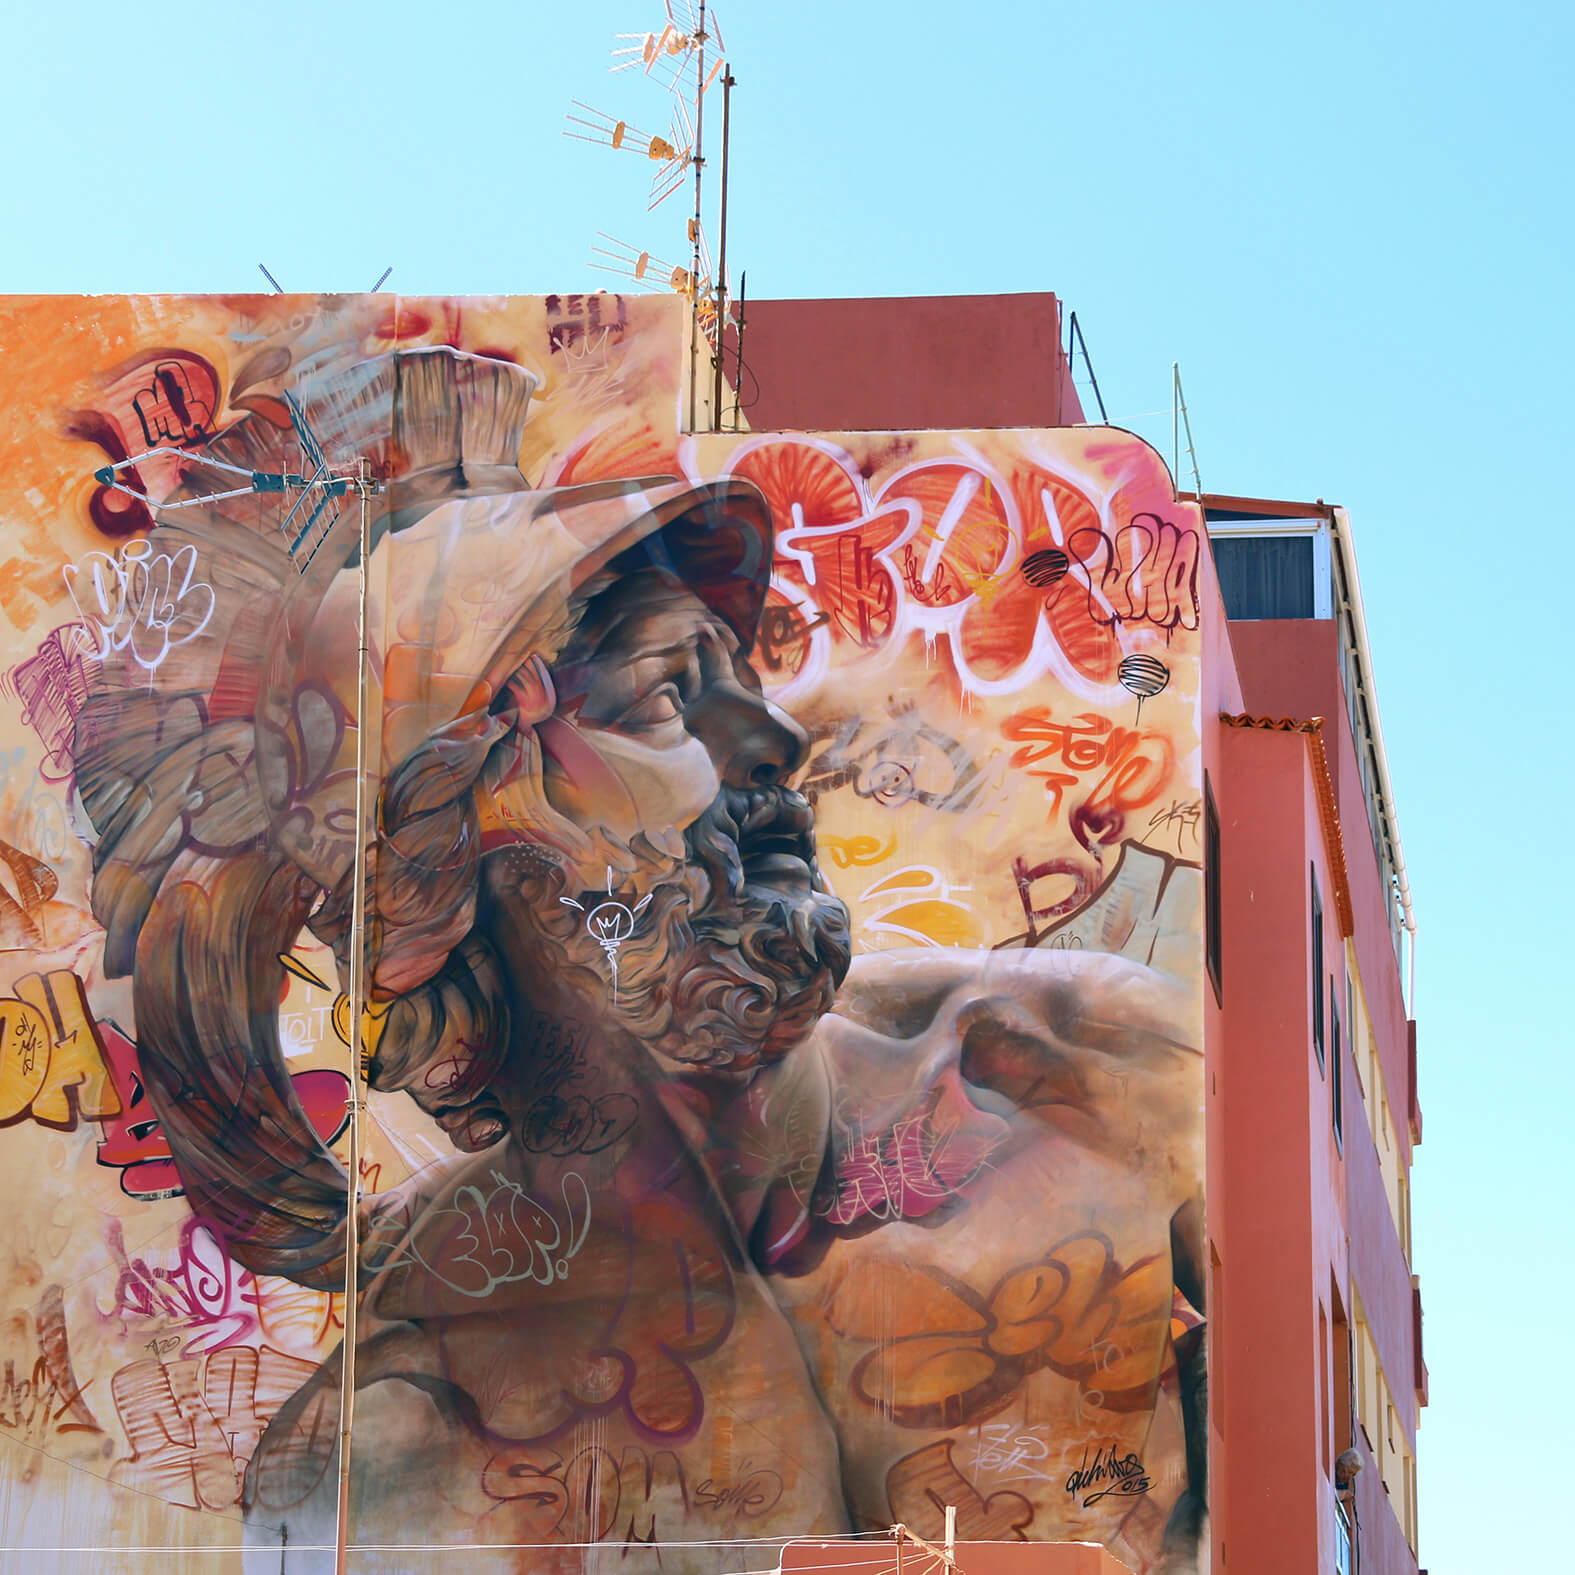 Mural by Pichiavo, one of the bets murals of 2015